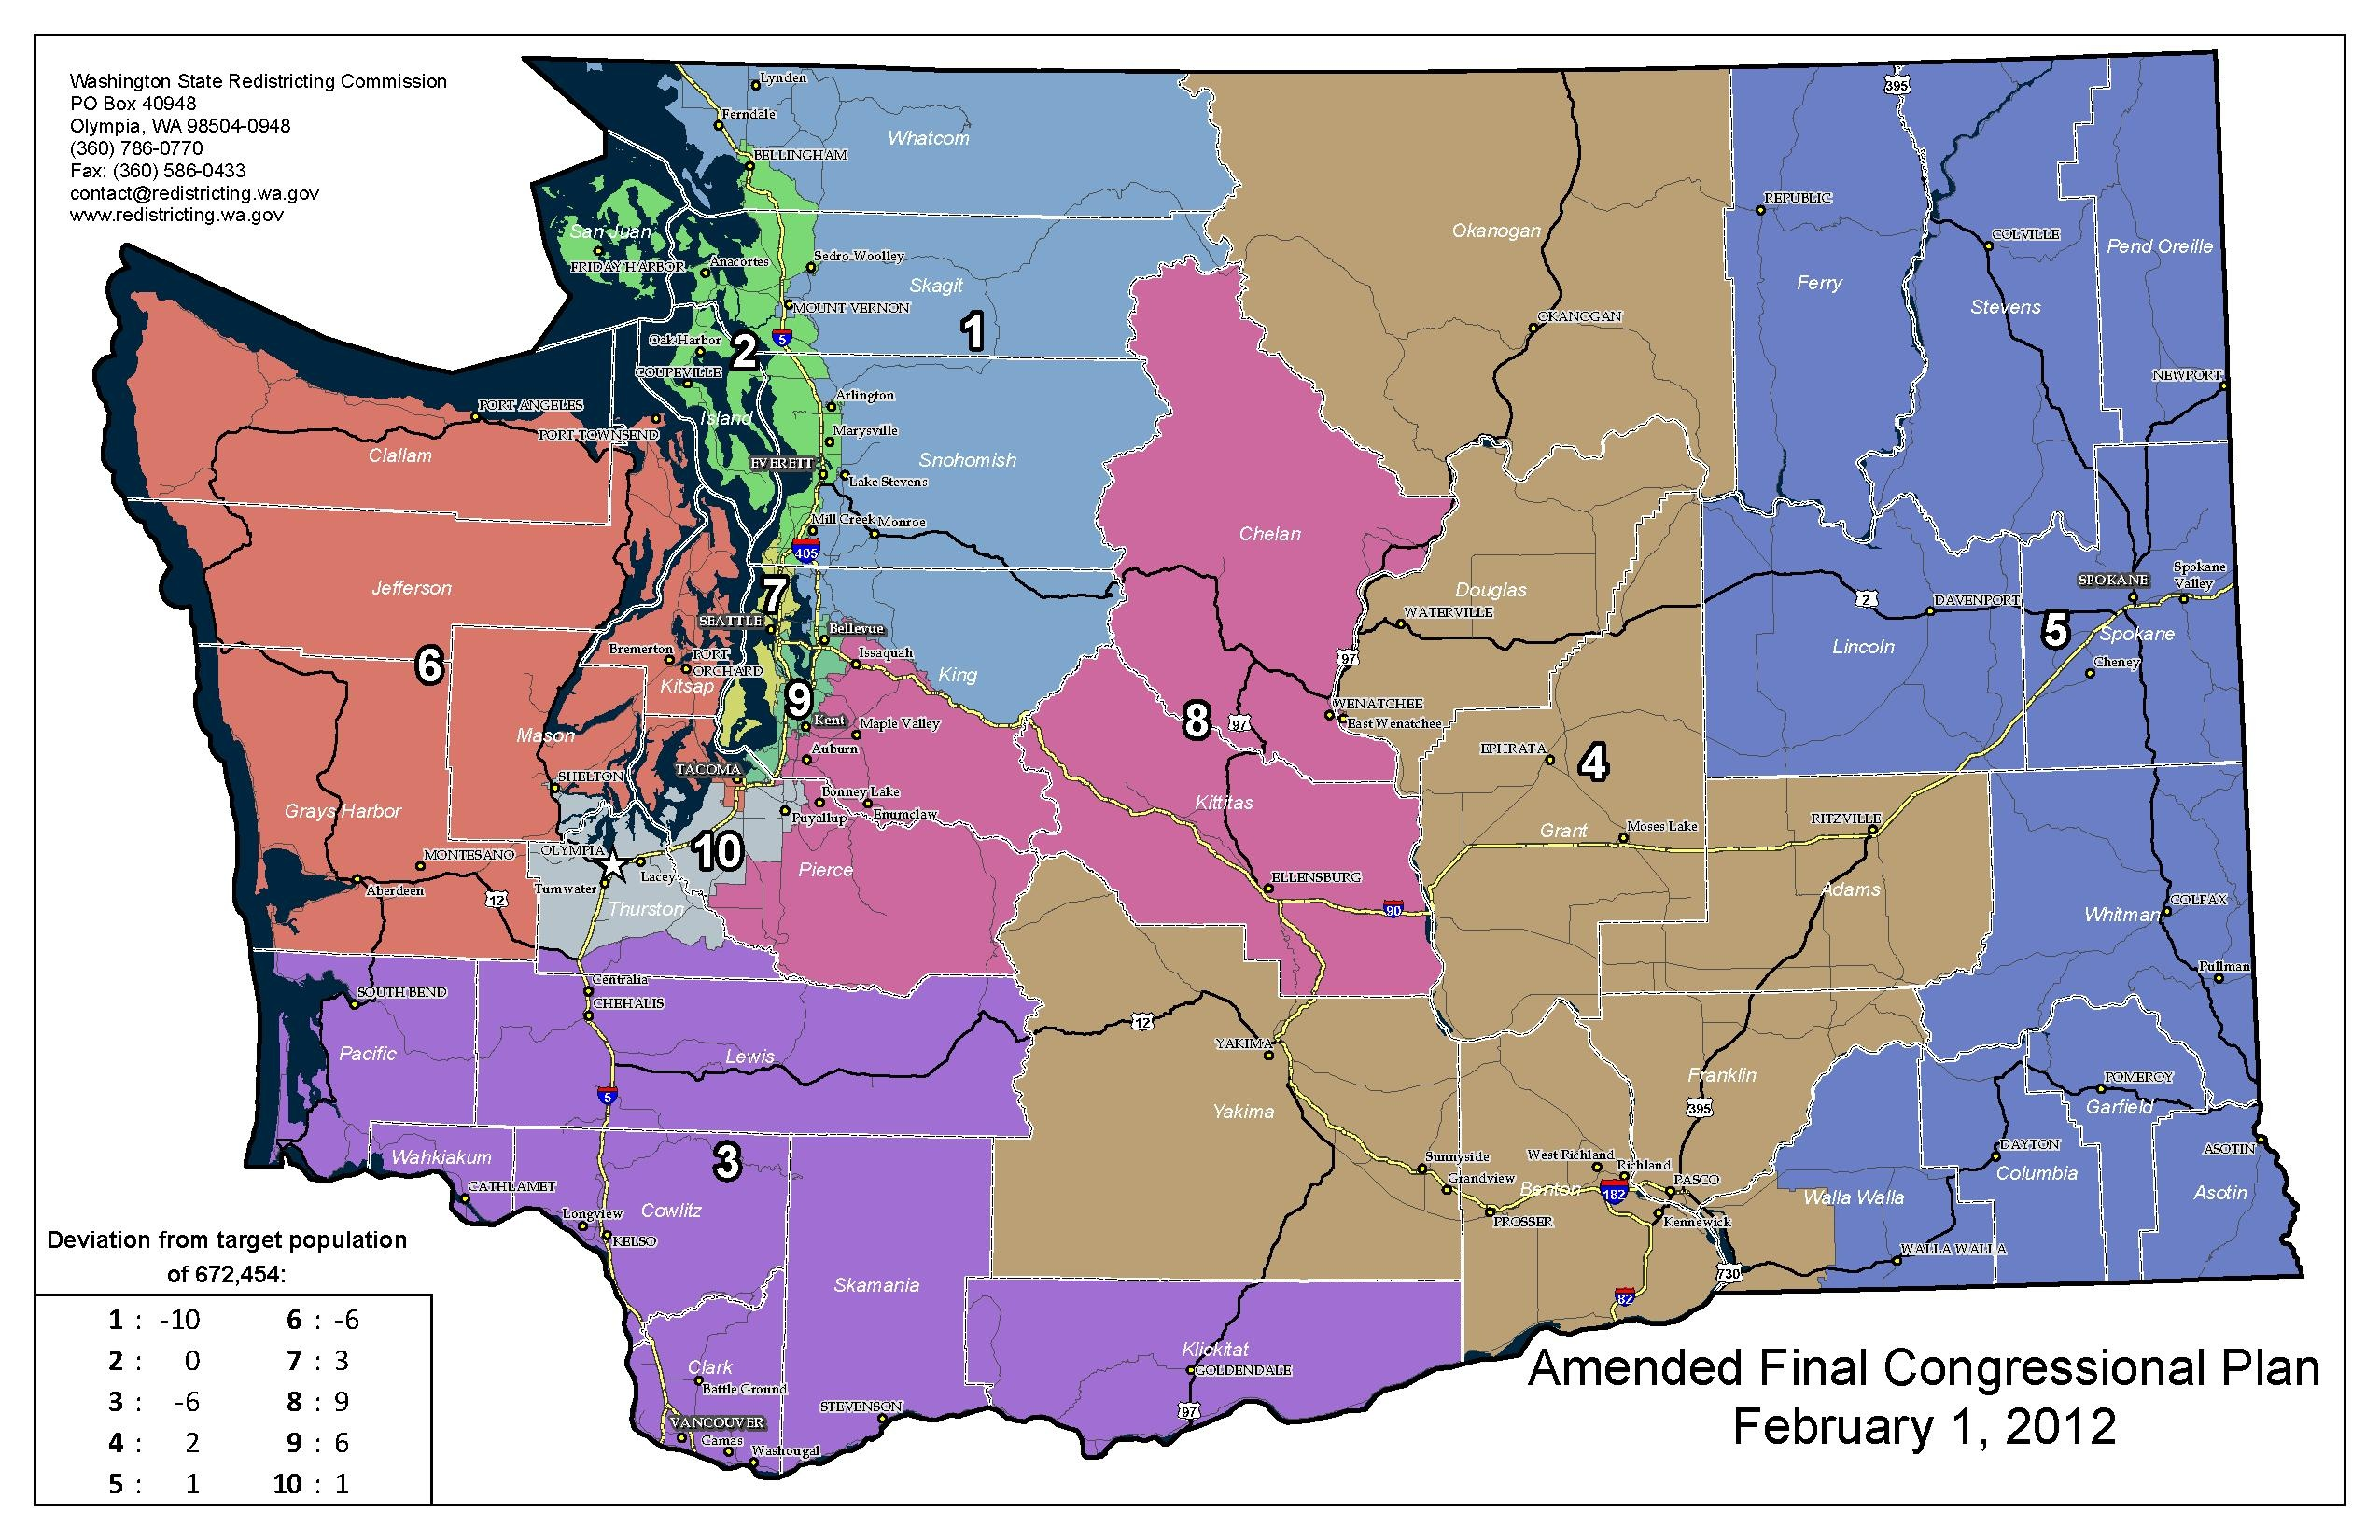 2012 Map of WA Congressional Districts